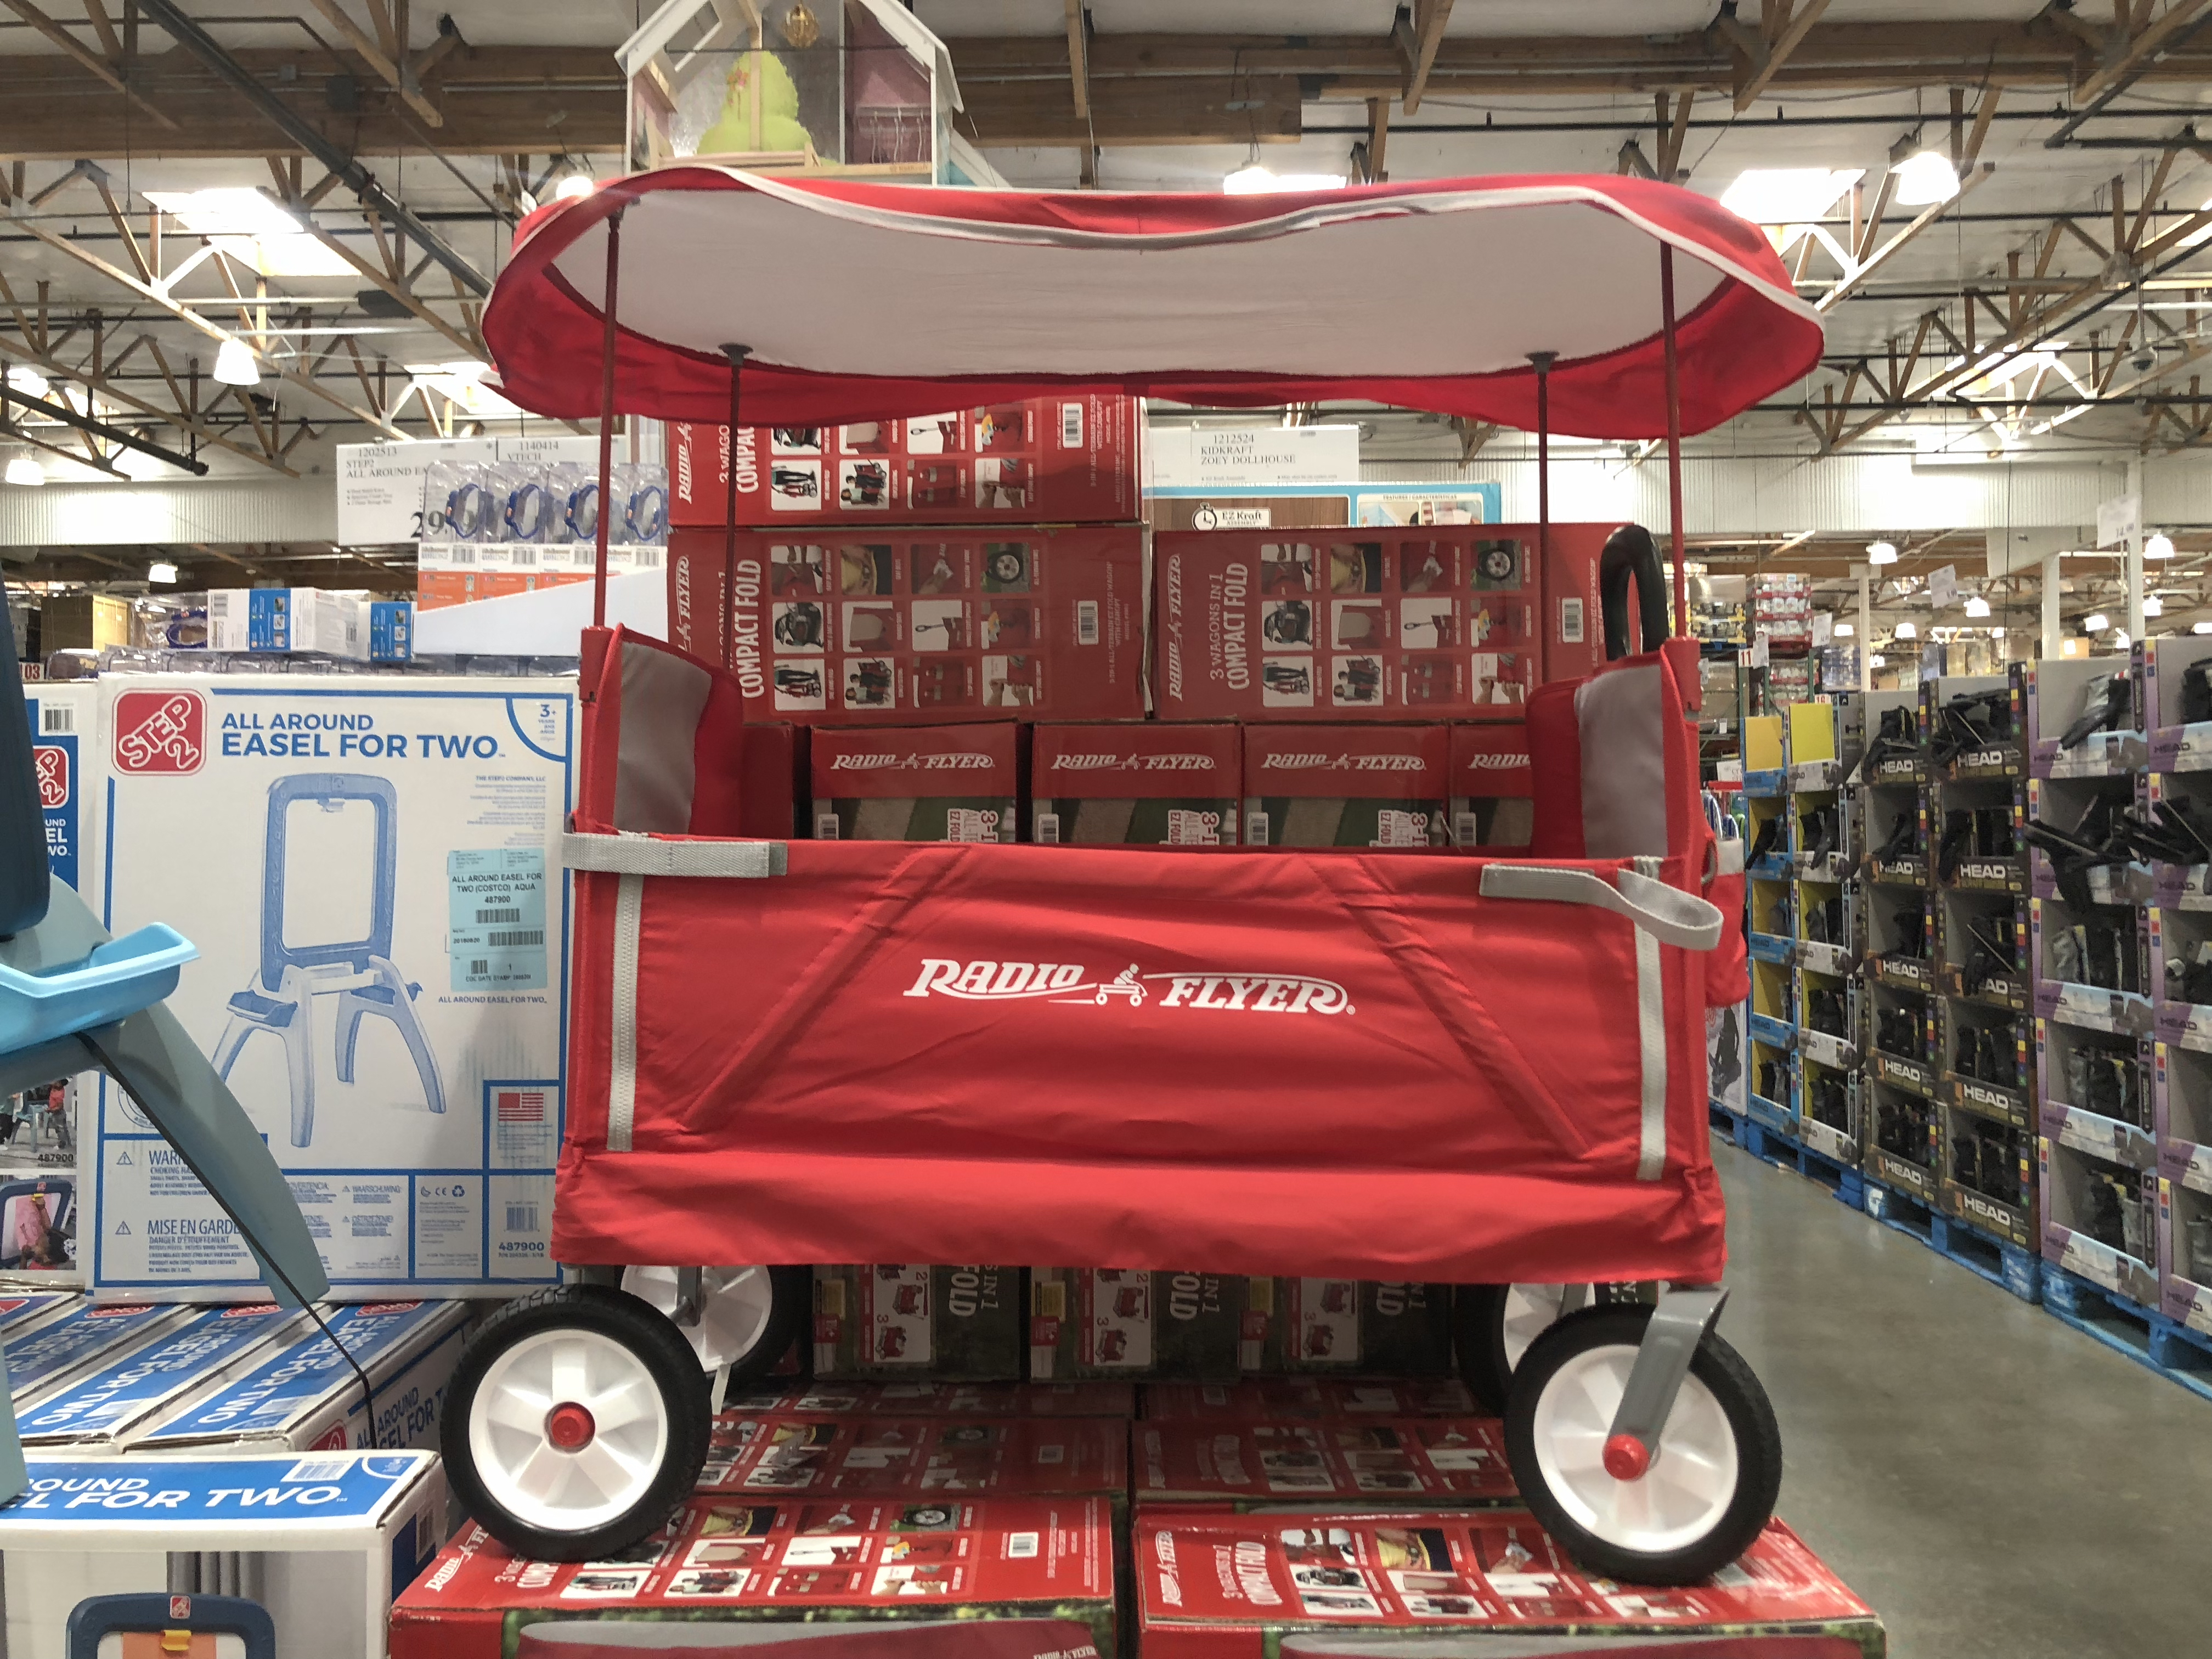 34 Costco Holiday 2018 Toy Deals - Hip2Save